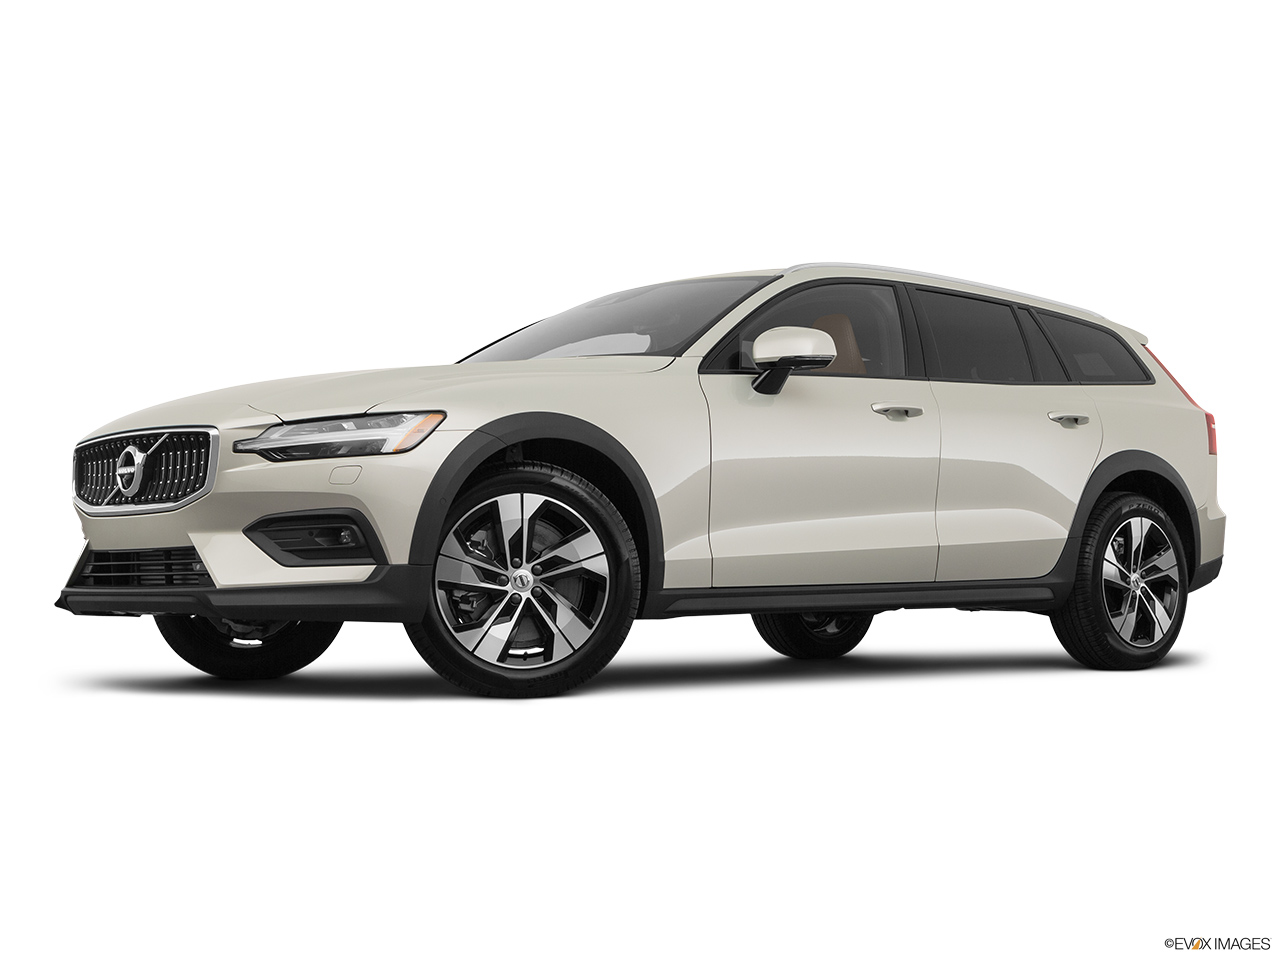 2020 Volvo V60 Cross Country T5 AWD Low/wide front 5/8.